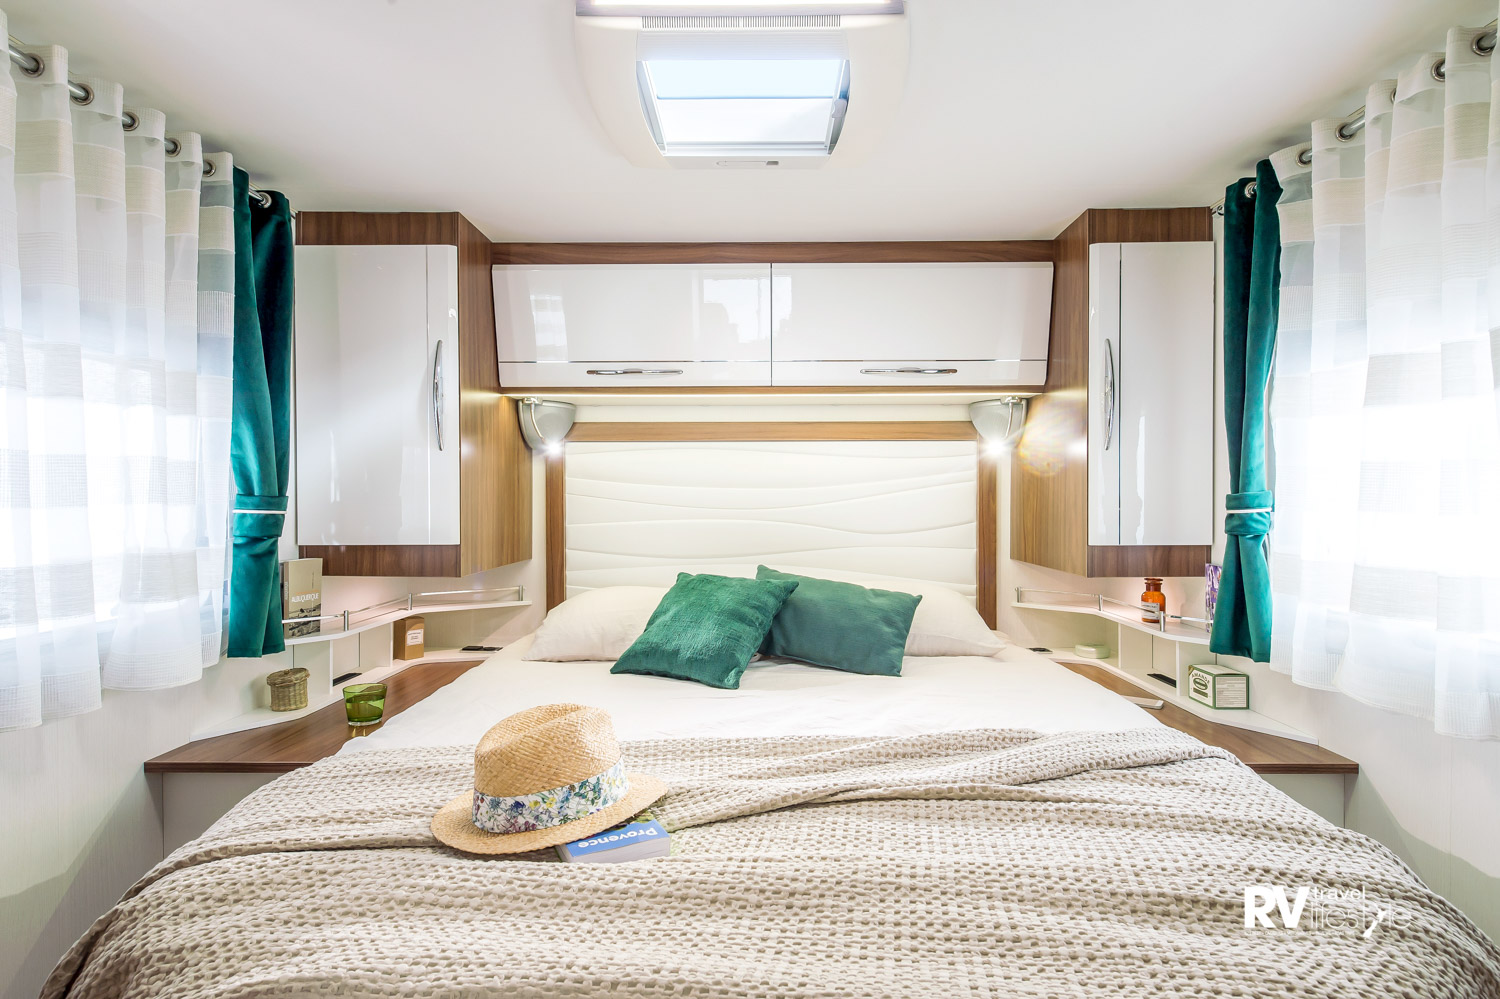 Nice bedroom, adjustable headboard, windows both sides, roof vent, under bed storage and drawers